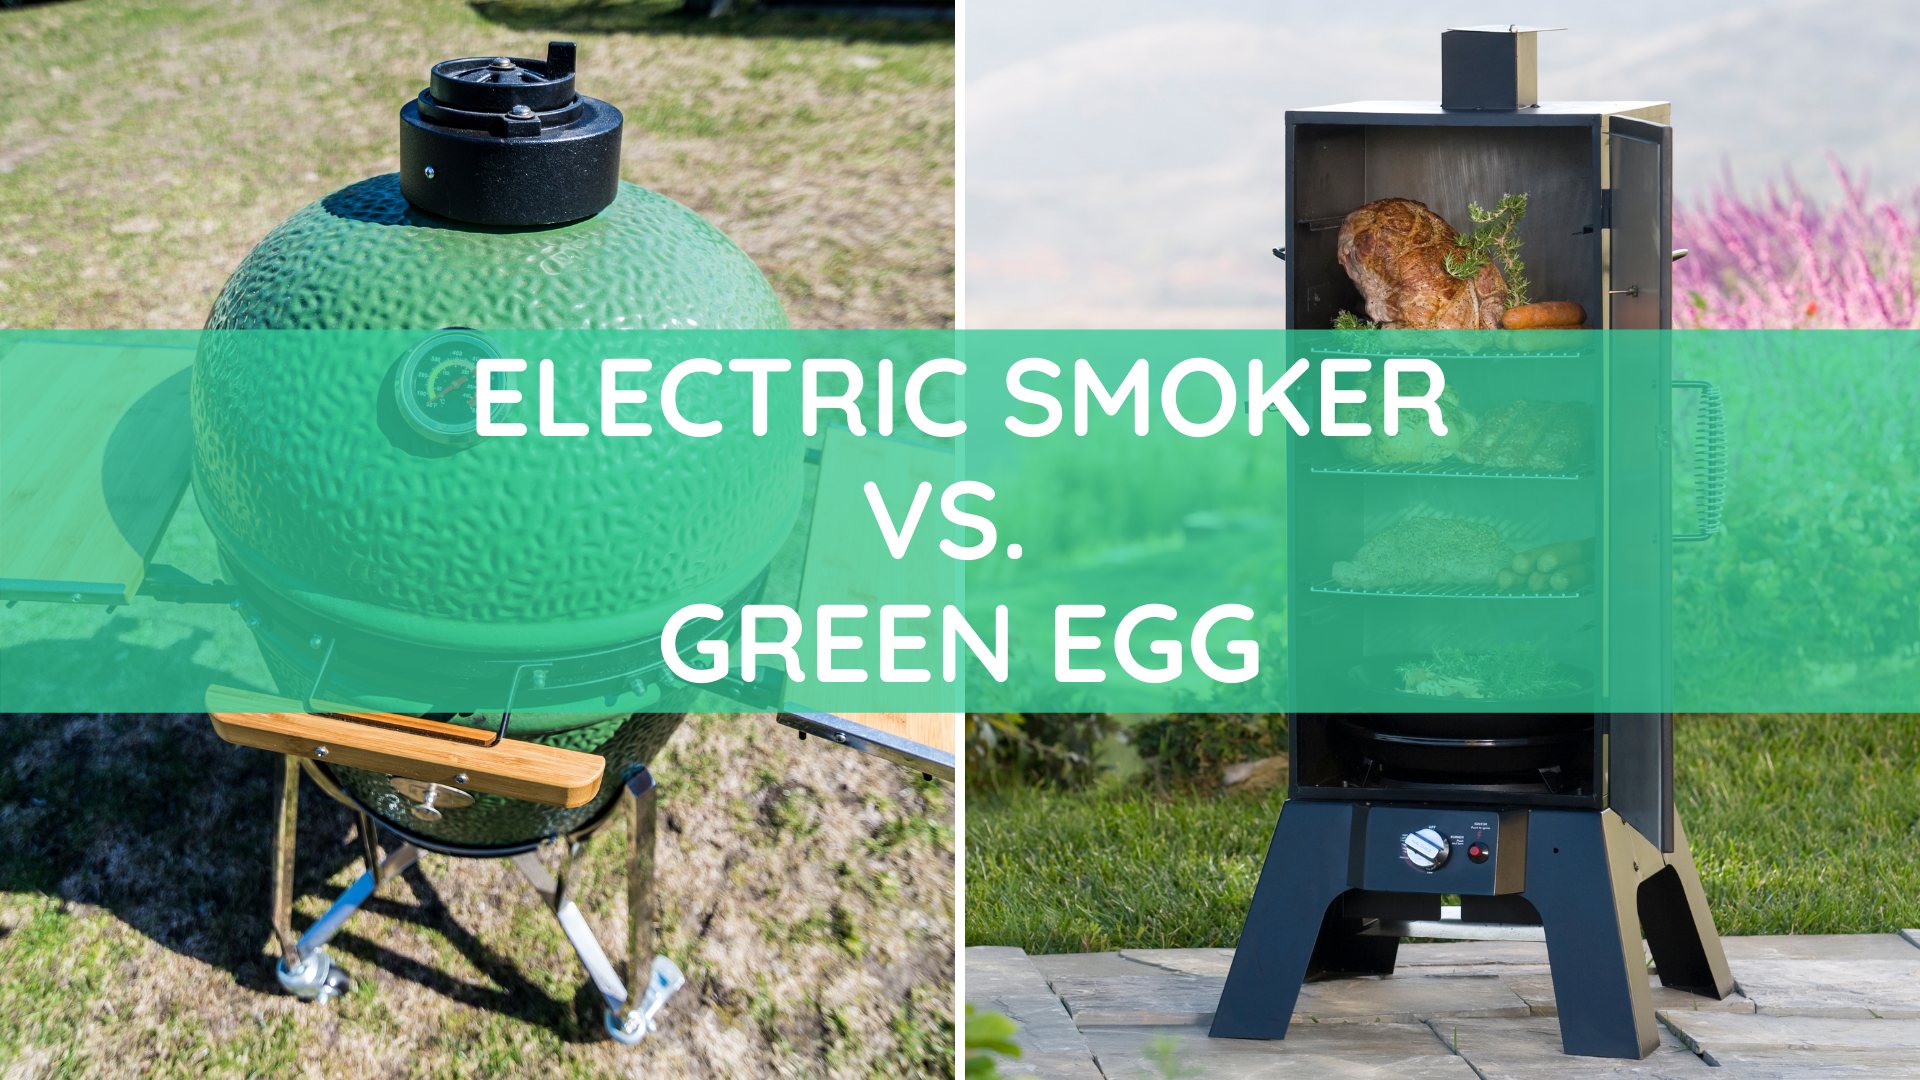 Electric smoker vs Big Green Egg comparison which one to buy?